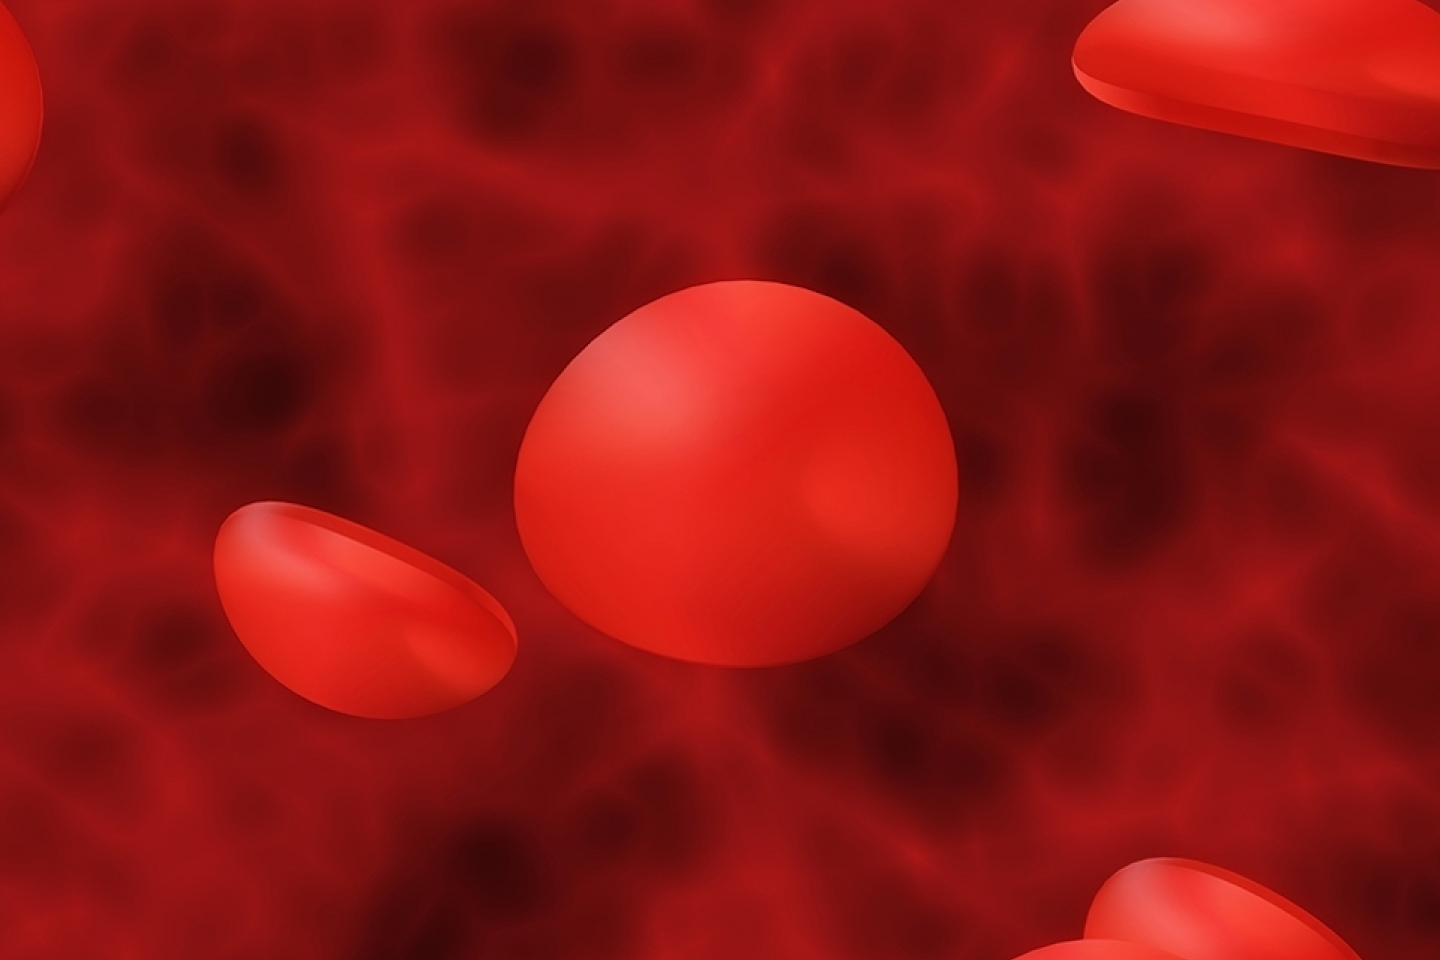 Red blood cells in vein 3D illustration